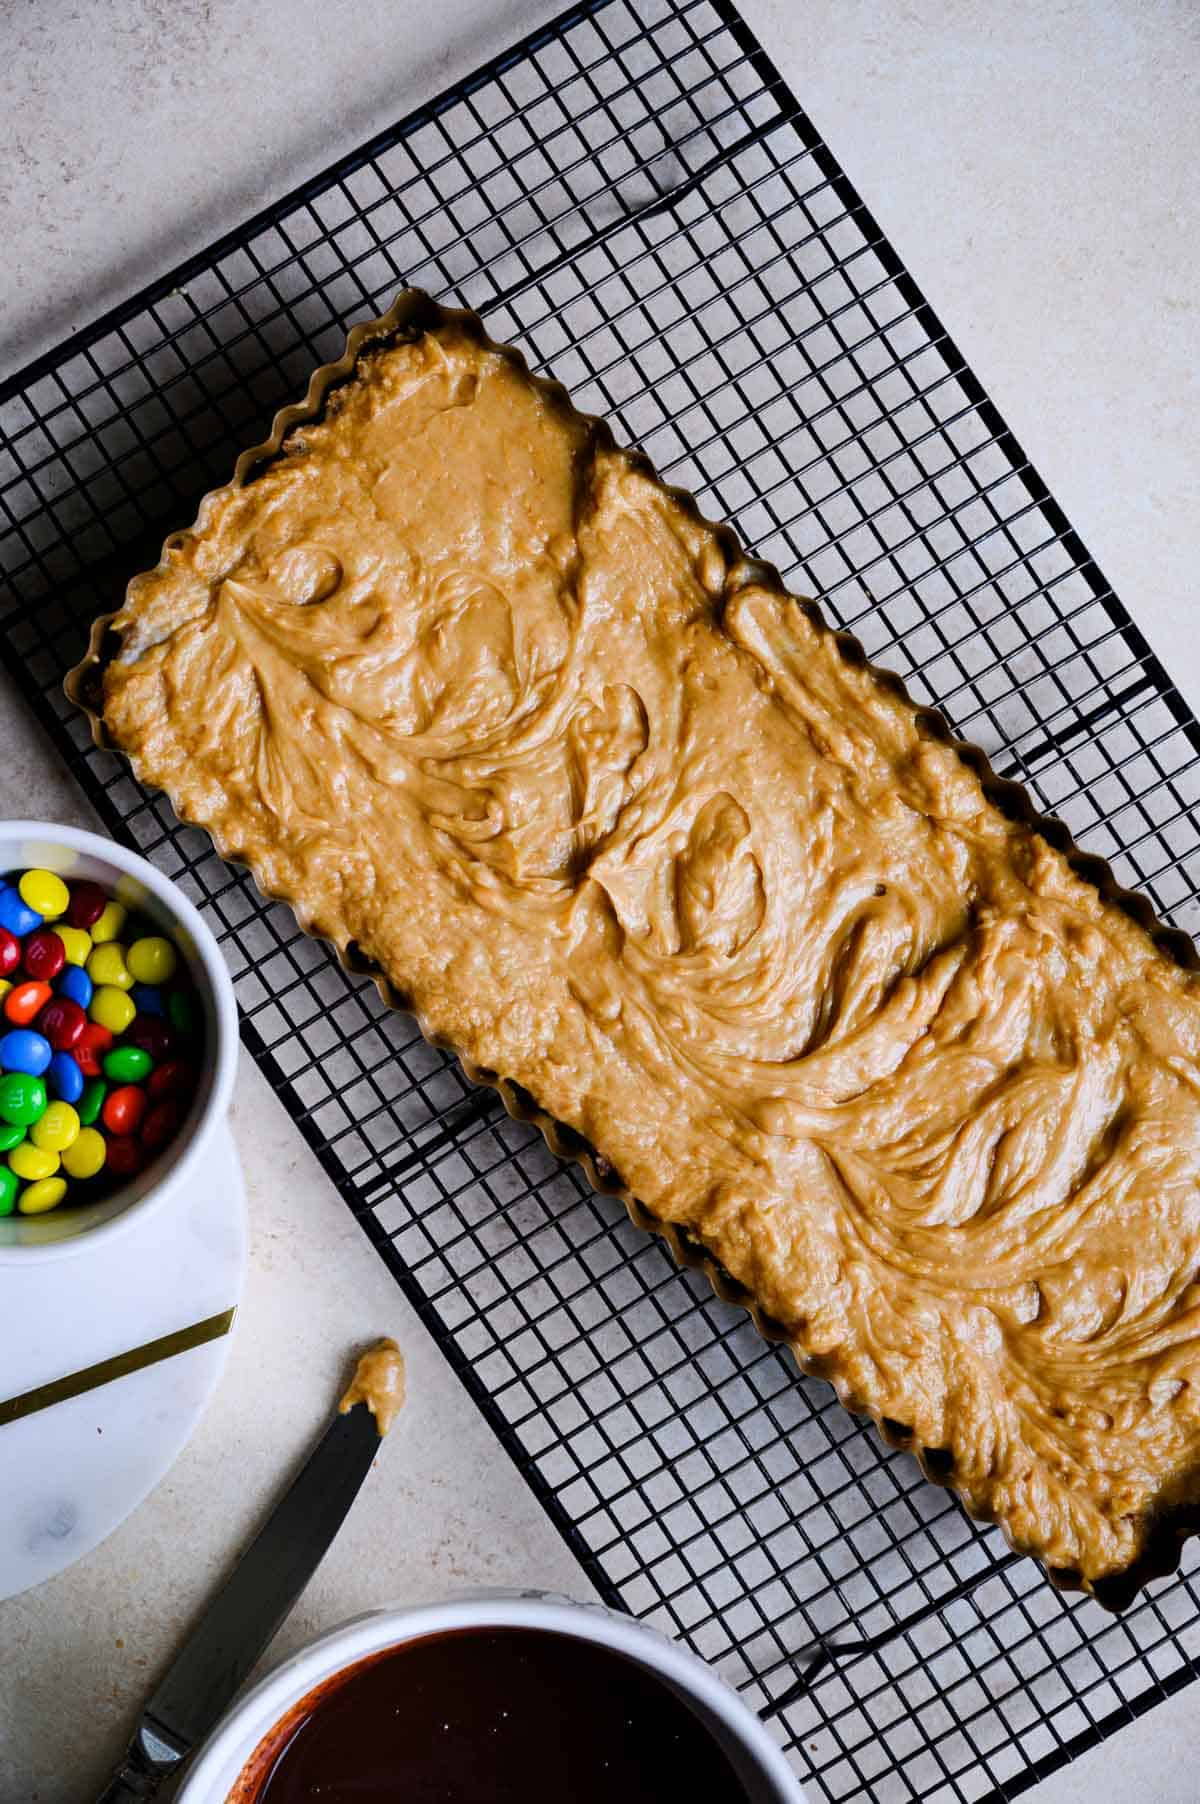 peanut butter mousse filled rectangular tart pan on a black wire cooling rack